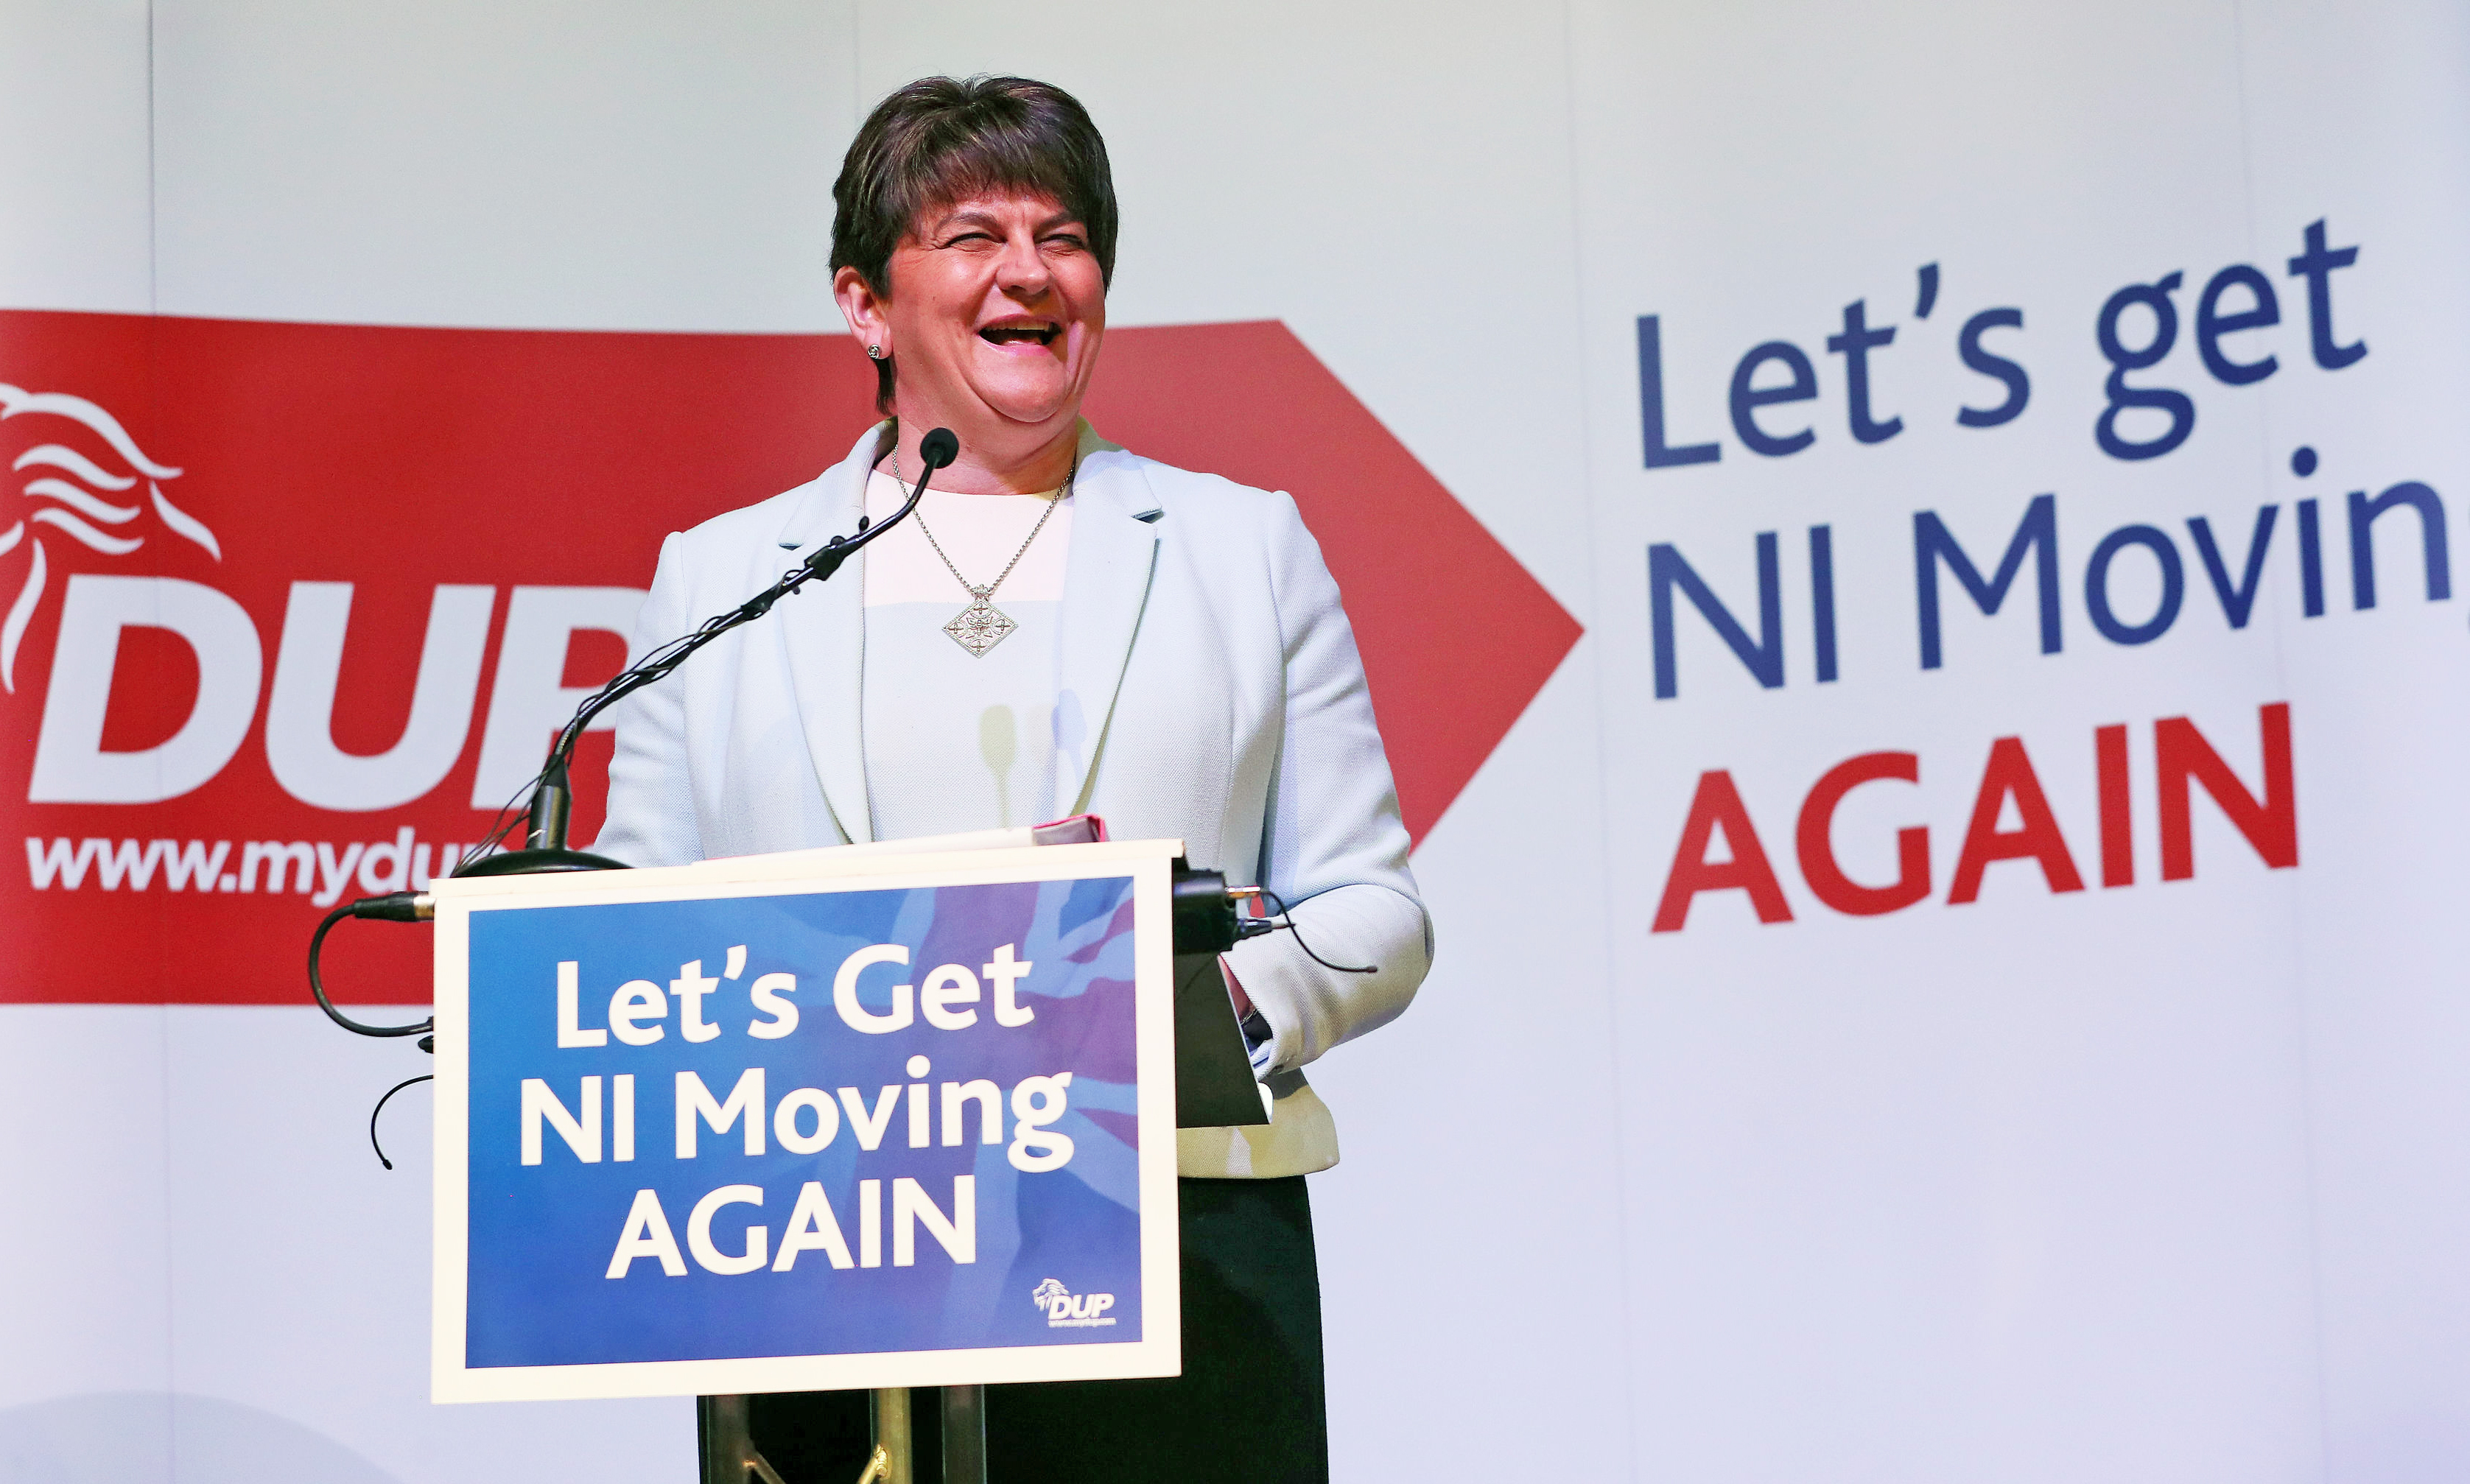 DUP leader Arlene Foster speaking at her party's General Election manifesto launch at W5 in Belfast.